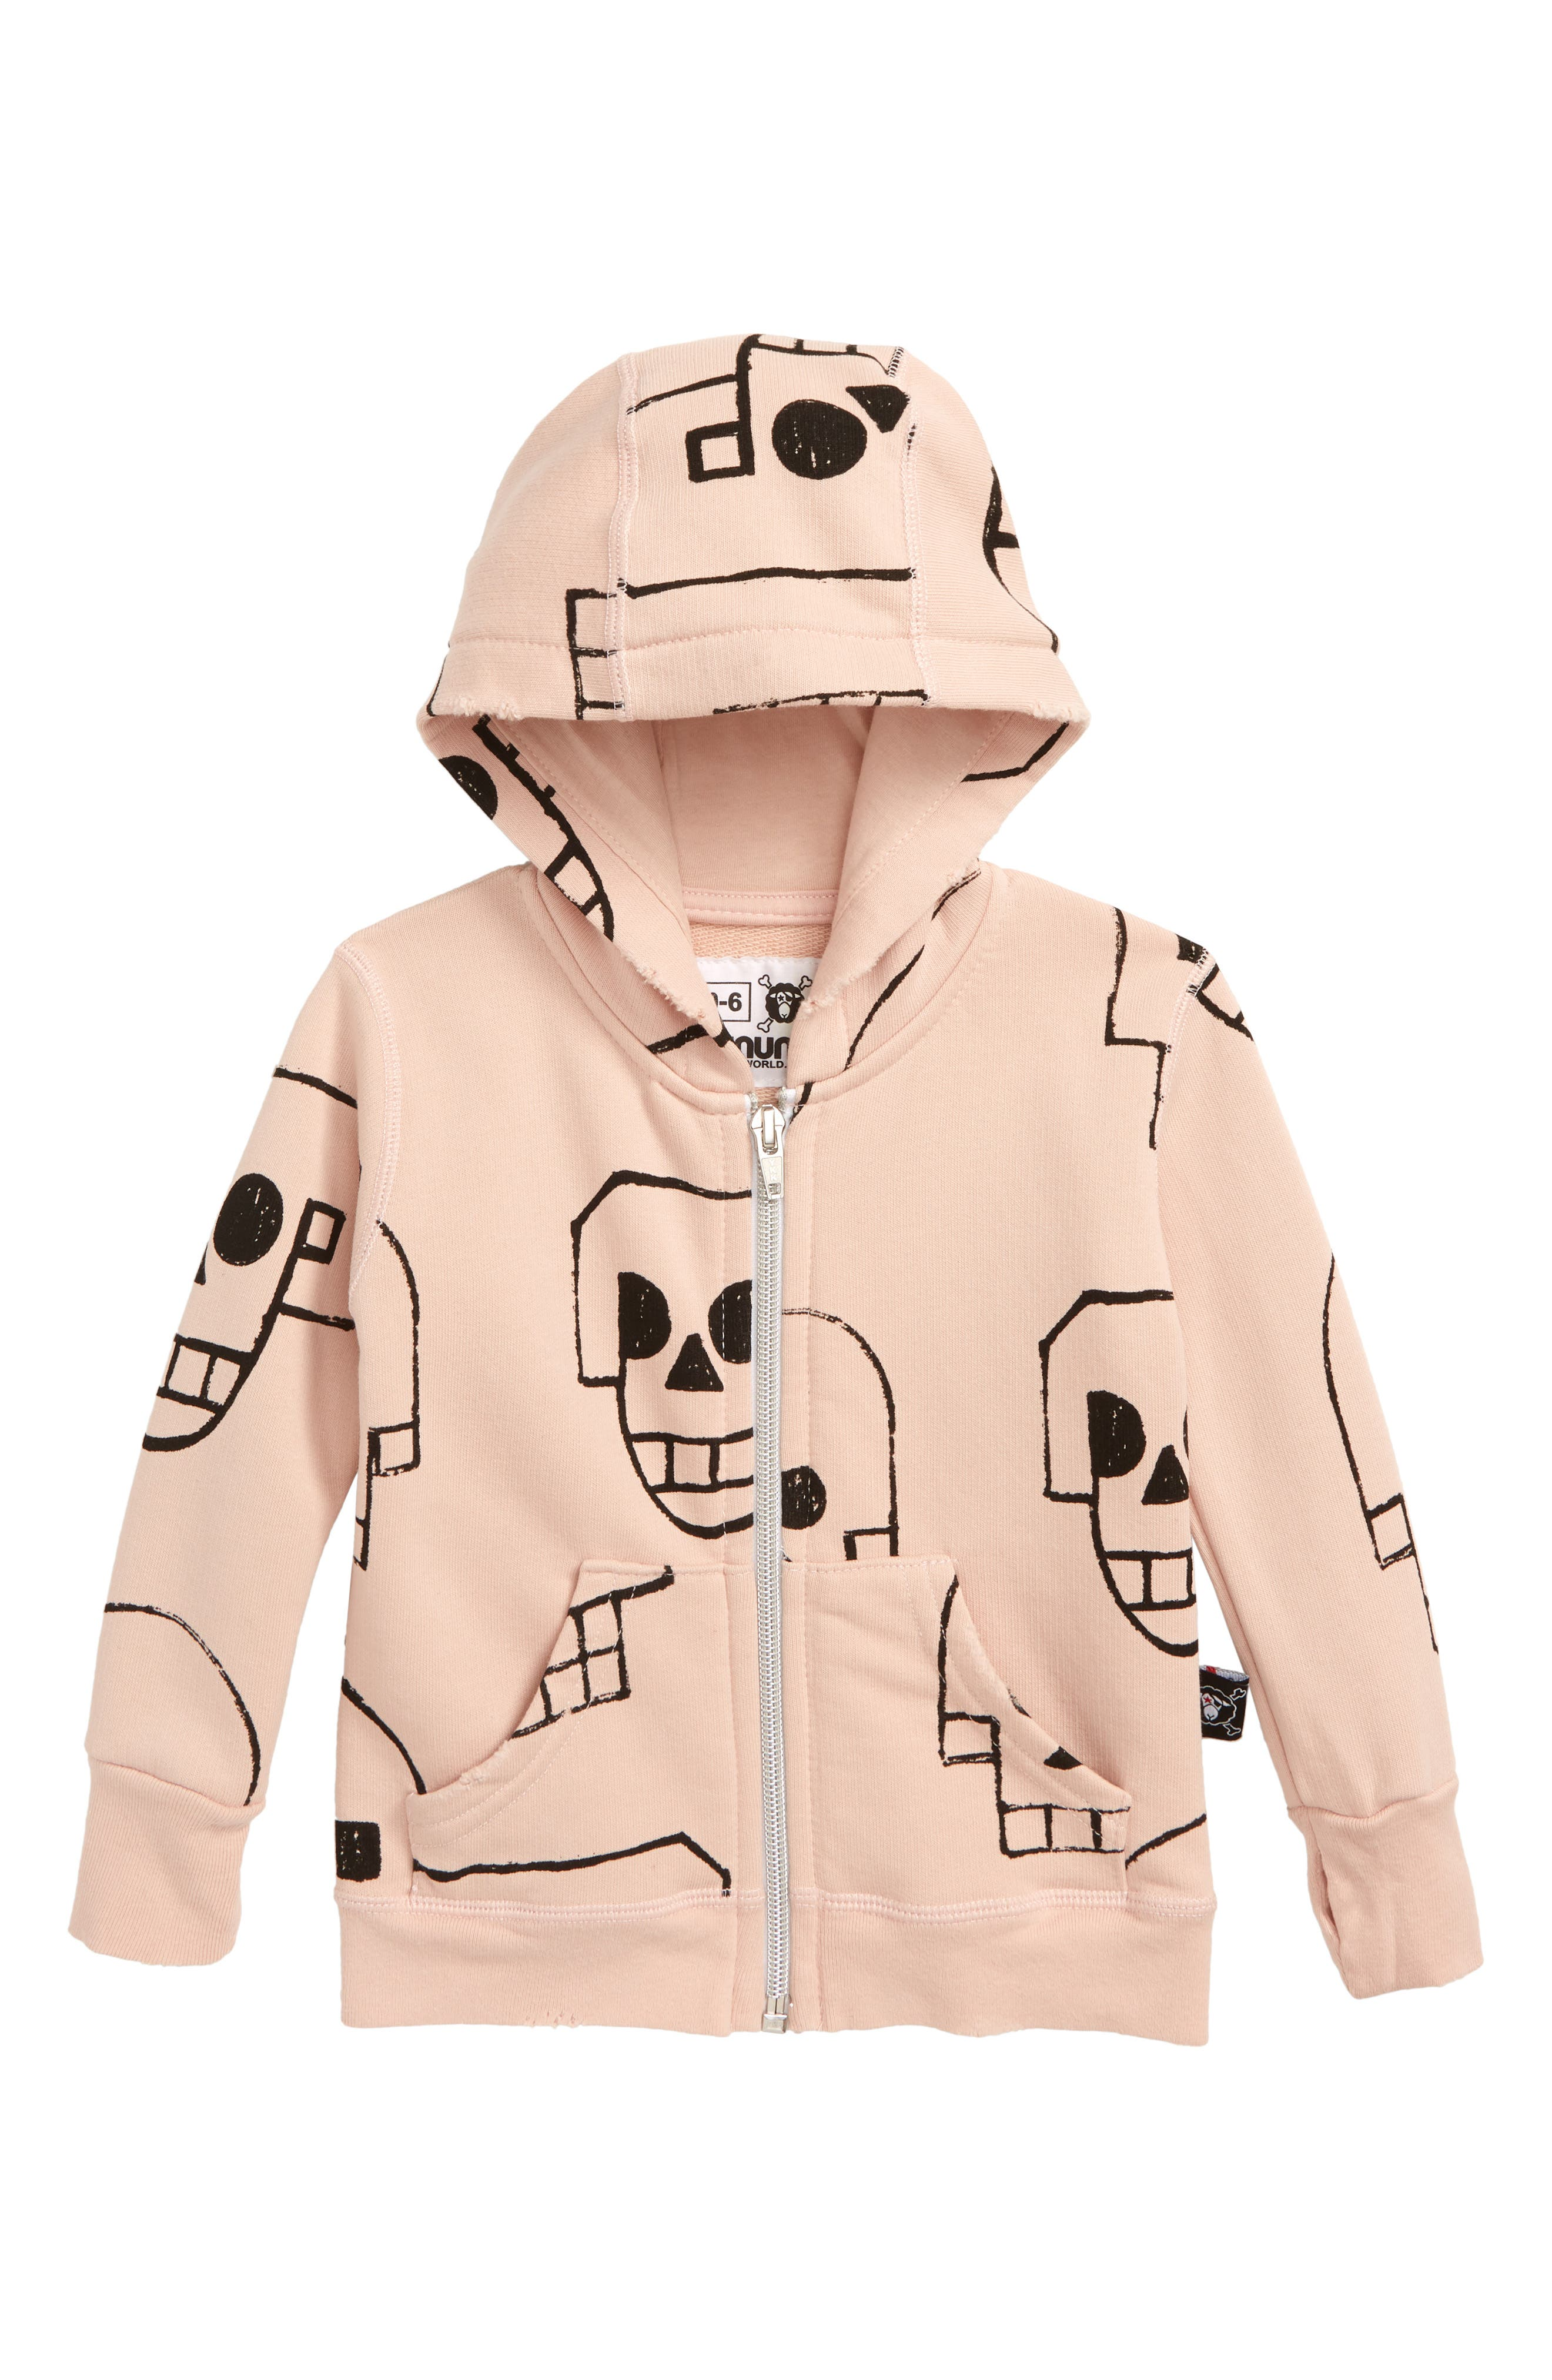 Skull Robot Zip Hoodie,                             Main thumbnail 1, color,                             POWDER PINK